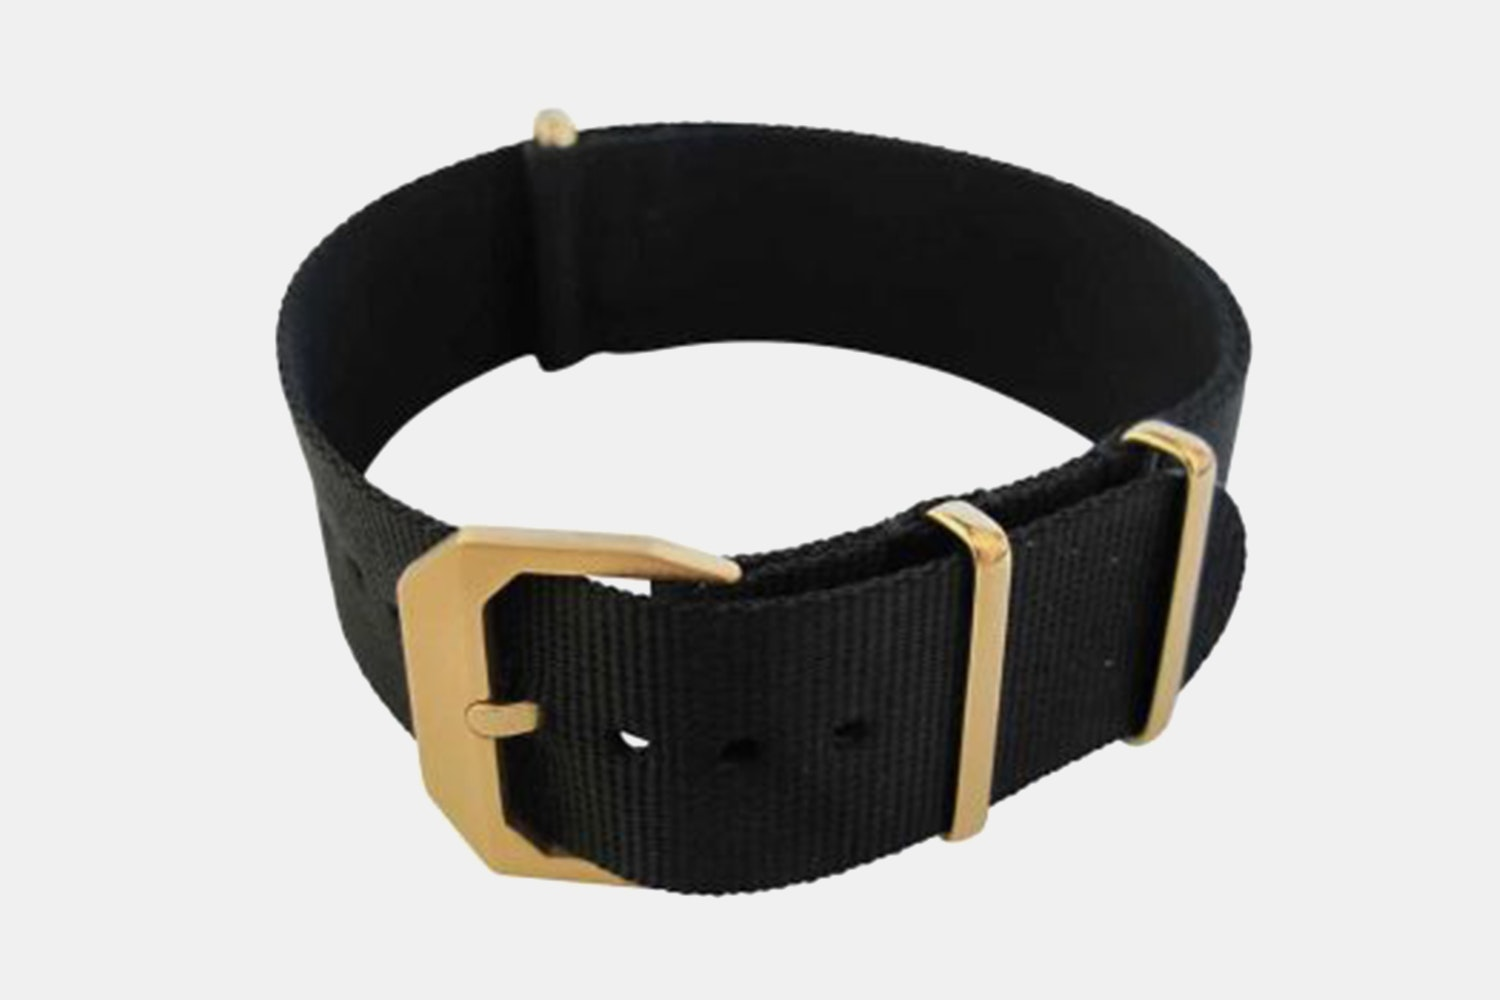 Black Nylon Strap, Gold Buckle